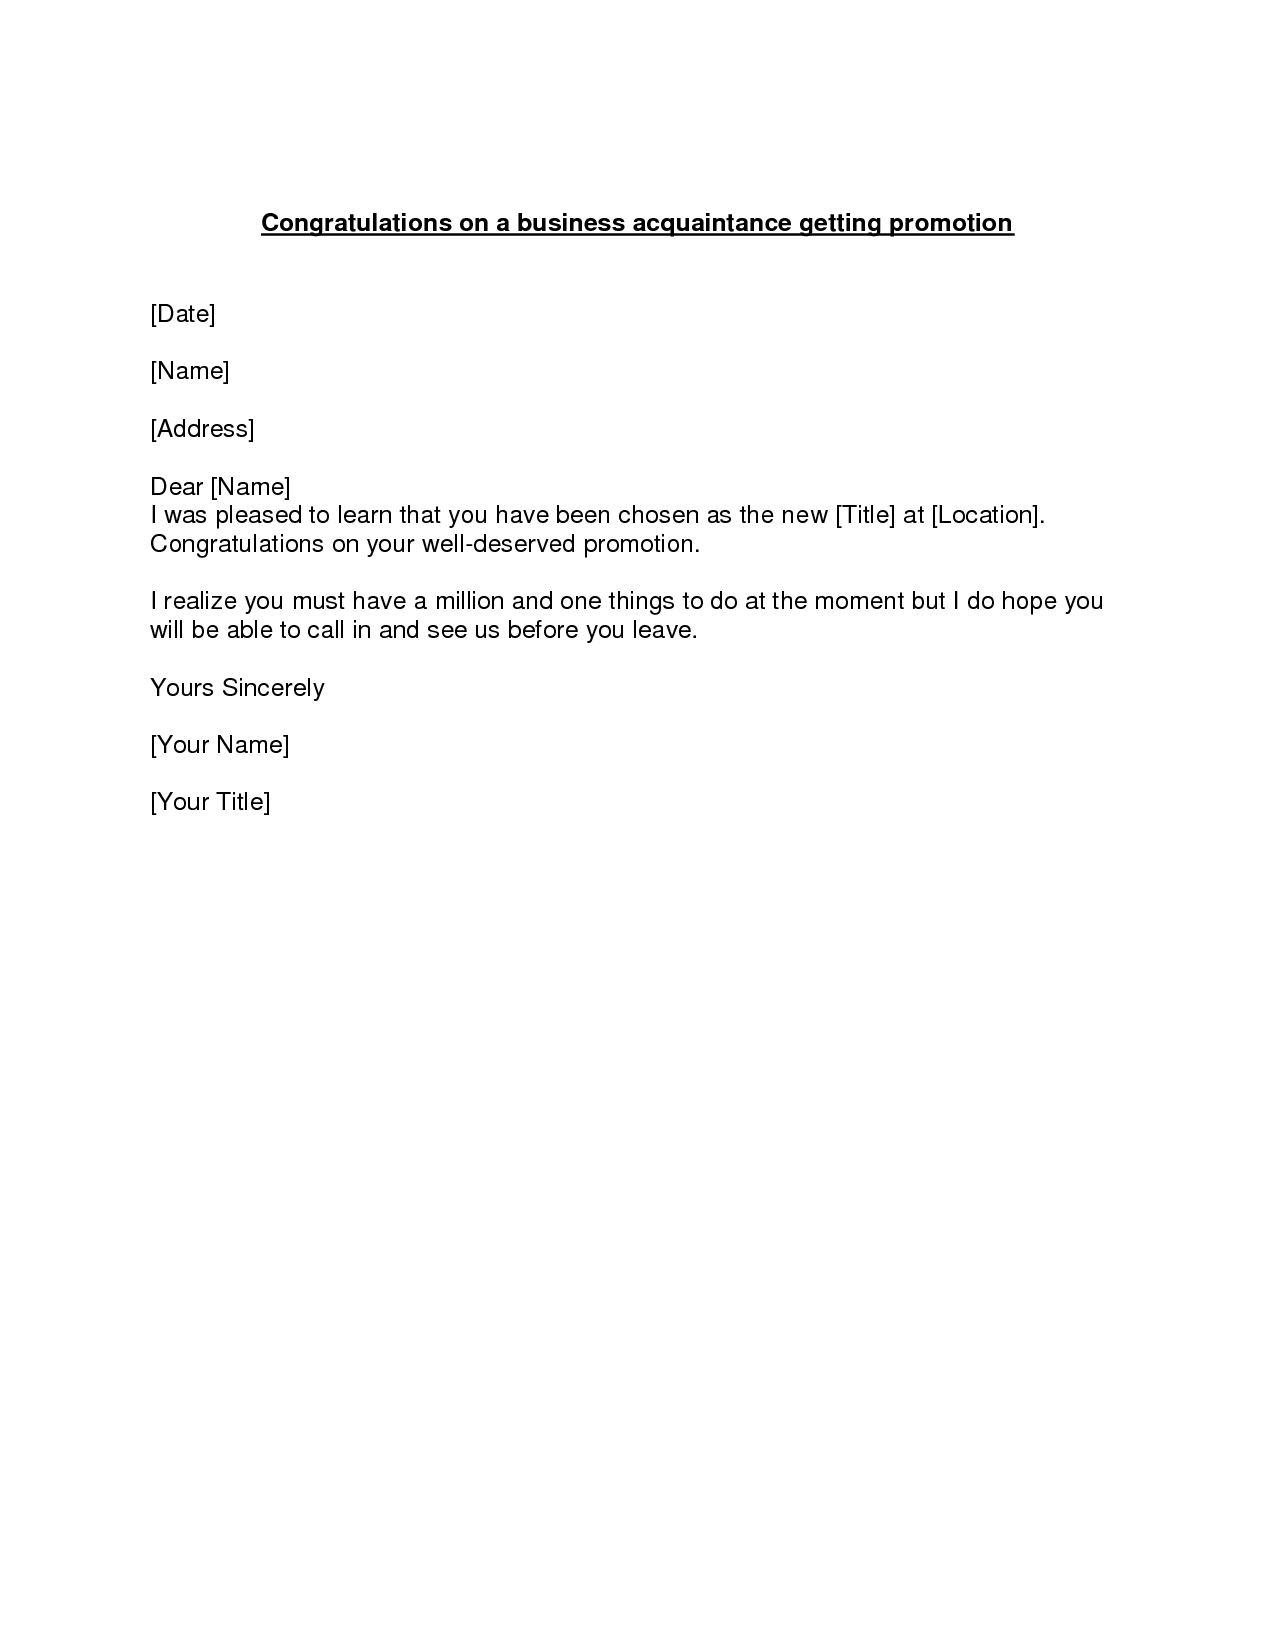 promotion congratulations letter example of a congratulations promotion congratulations letter example of a congratulations letter to send to a business associate who